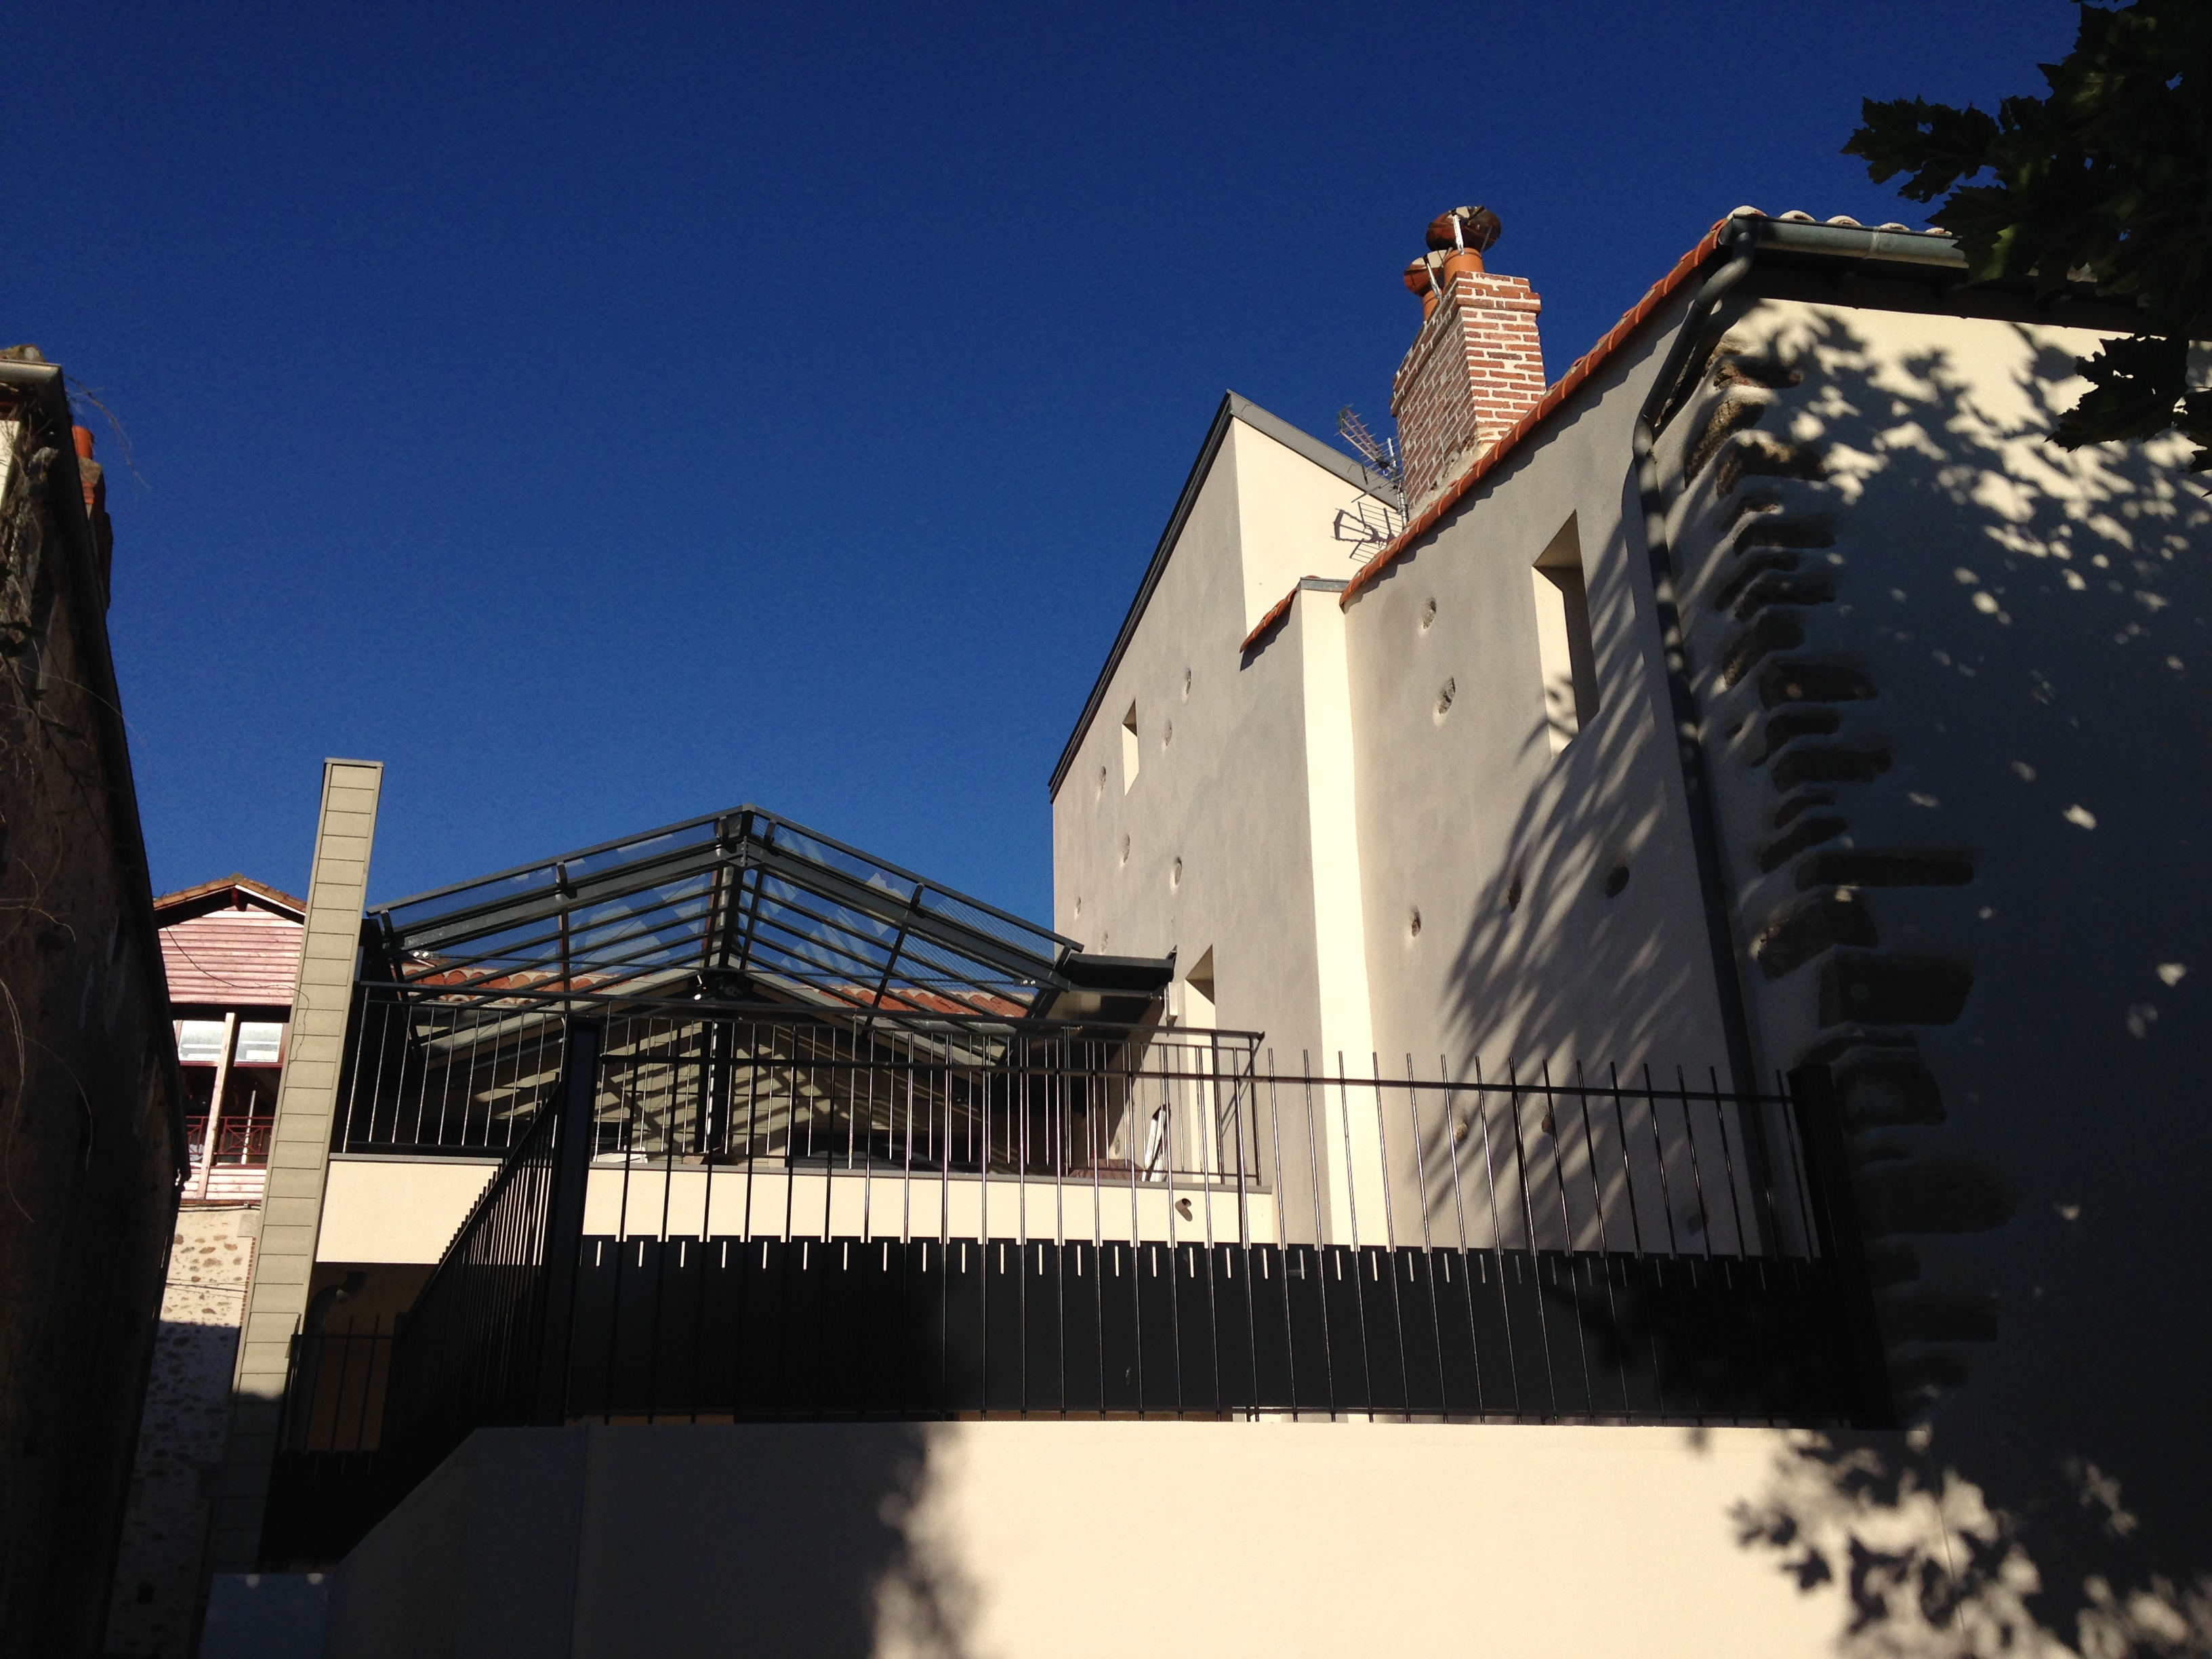 ext-grellier-clisson-2014-09-18-18-41-20